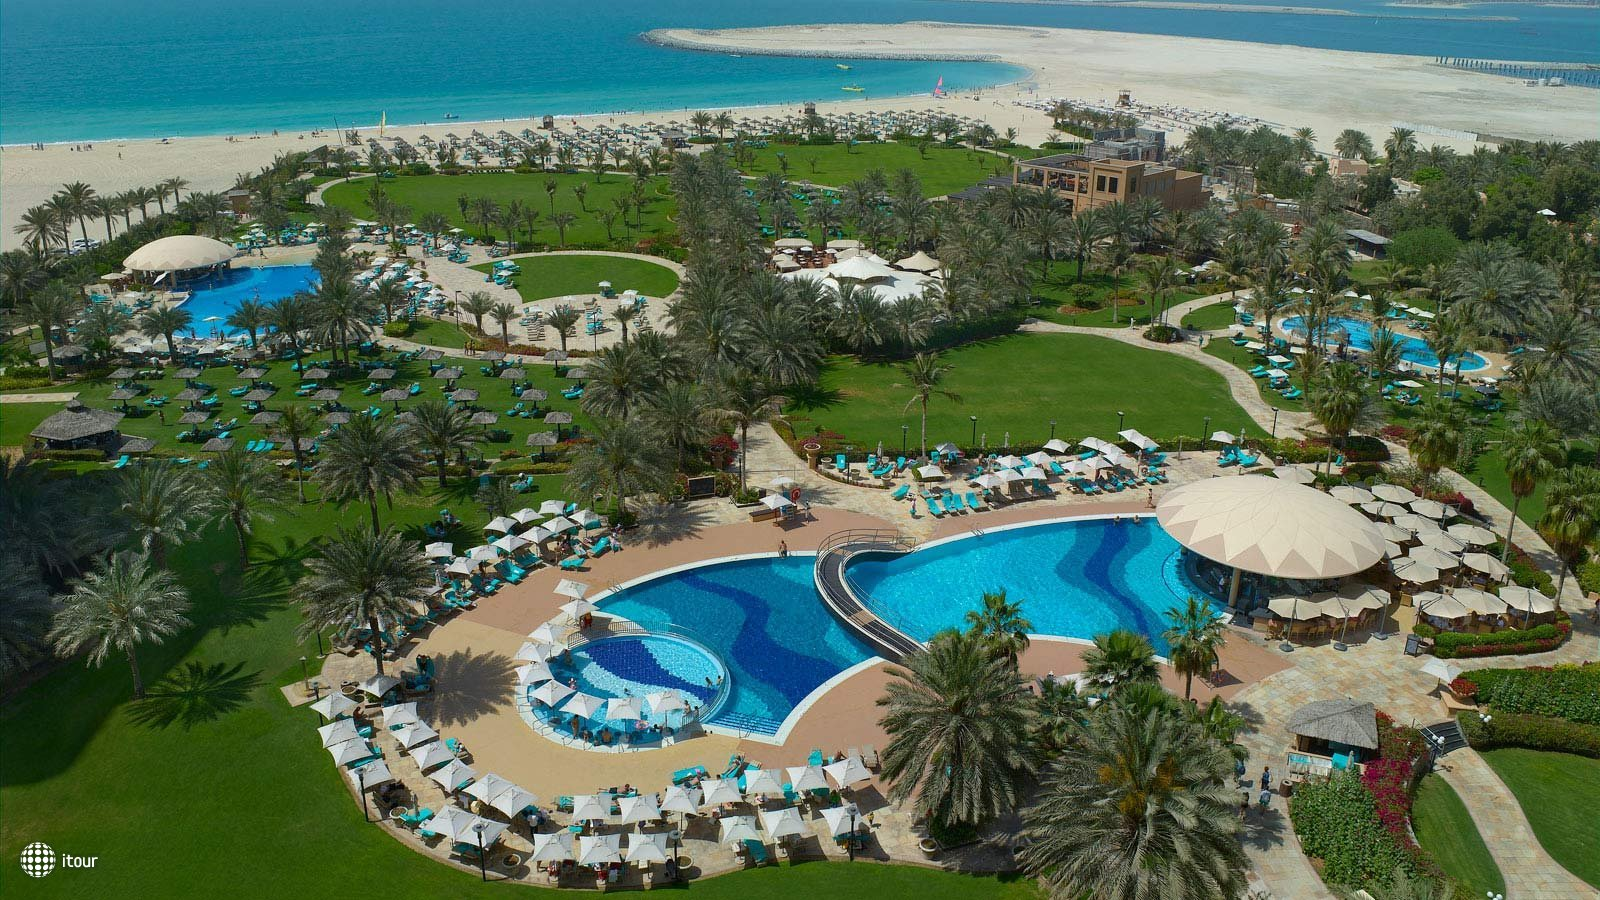 Le Royal Meridien Beach Resort & Spa 1